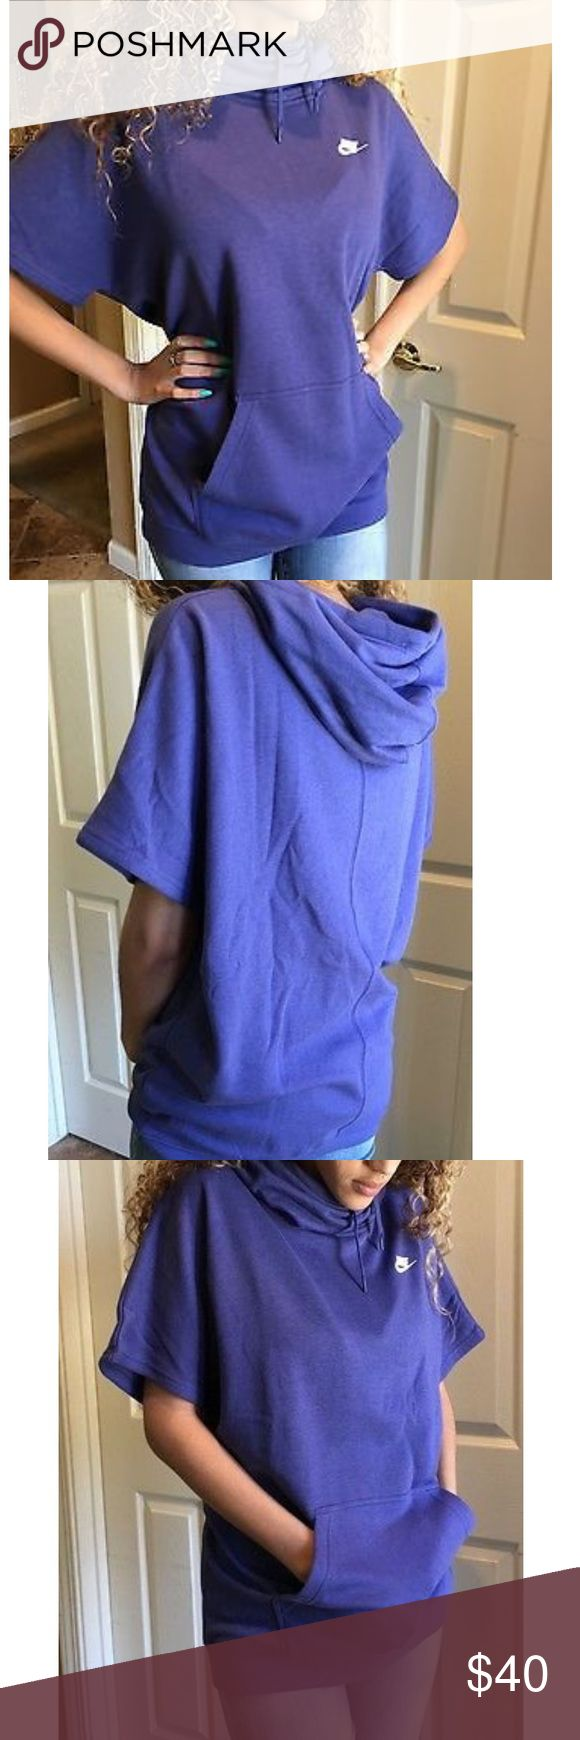 Nike short sleeve hoodie size M*NEW* No trade New*women's Nike Purple hoodie is warm with brushed back fleece and hits mid thigh for ultimate comfort.  The color is a purple-ish blue, the picture with the model is just to show fit.   Attached drawcord hood Cowlneck Cotton, rayon, polyester Nike Tops Sweatshirts & Hoodies